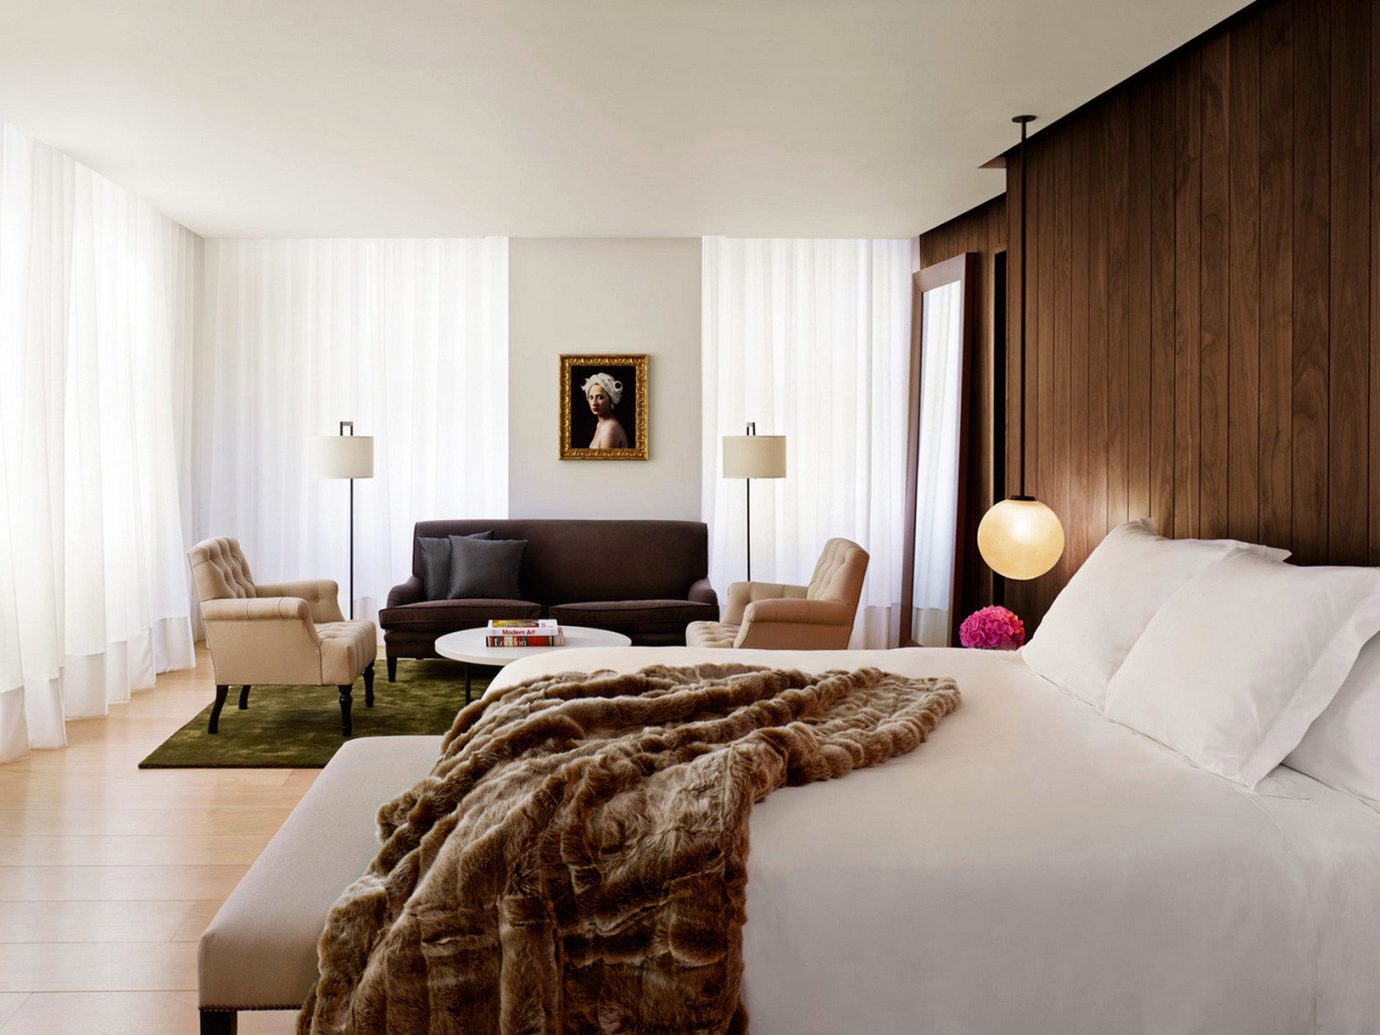 Bedroom Boutique Hotels Elegant Hip London Luxury Modern Romantic Hotels Suite indoor wall bed room sofa floor ceiling hotel property interior design home real estate cottage estate living room pillow apartment bed sheet flat decorated furniture